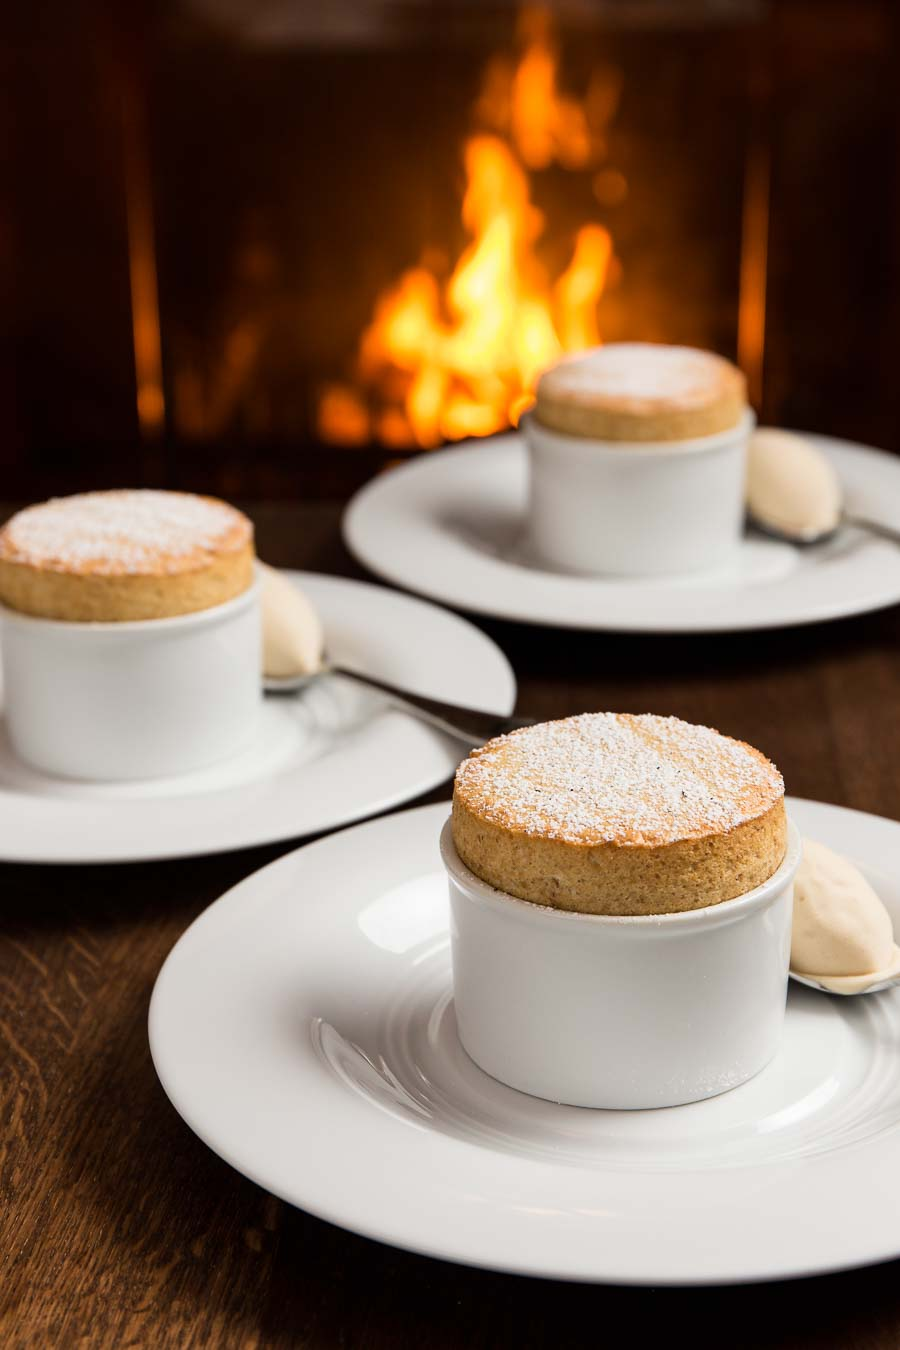 Three soufflé in white bowl, on white plates, along side spoons with quenelle ice-cream, on a wooden table with a lit fireplace in the background